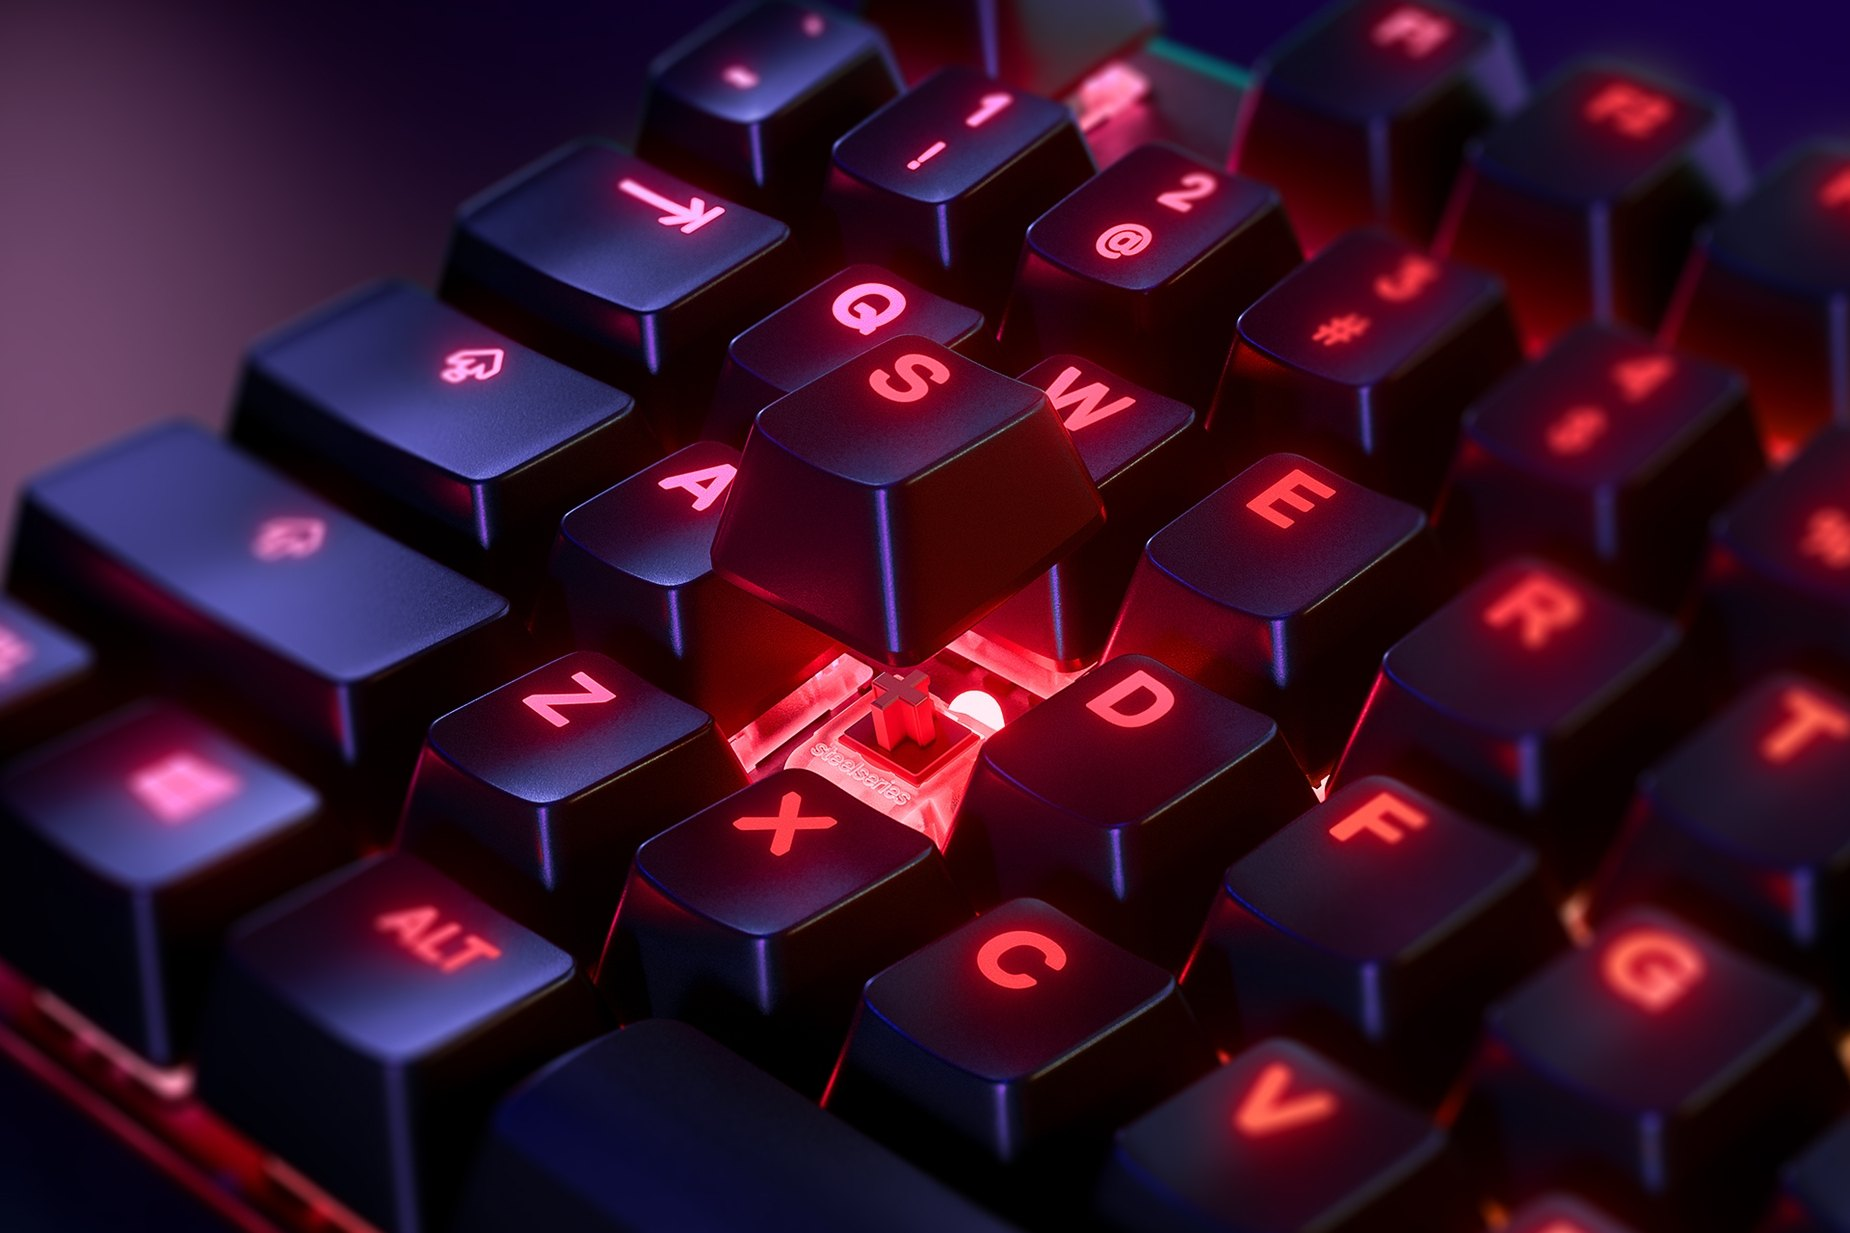 Zoomed in view of a single key on the French - Apex 7 TKL (Red Switch) gaming keyboard, the key is raised up to show the SteelSeries QX2 Mechanical RGB Switch underneath